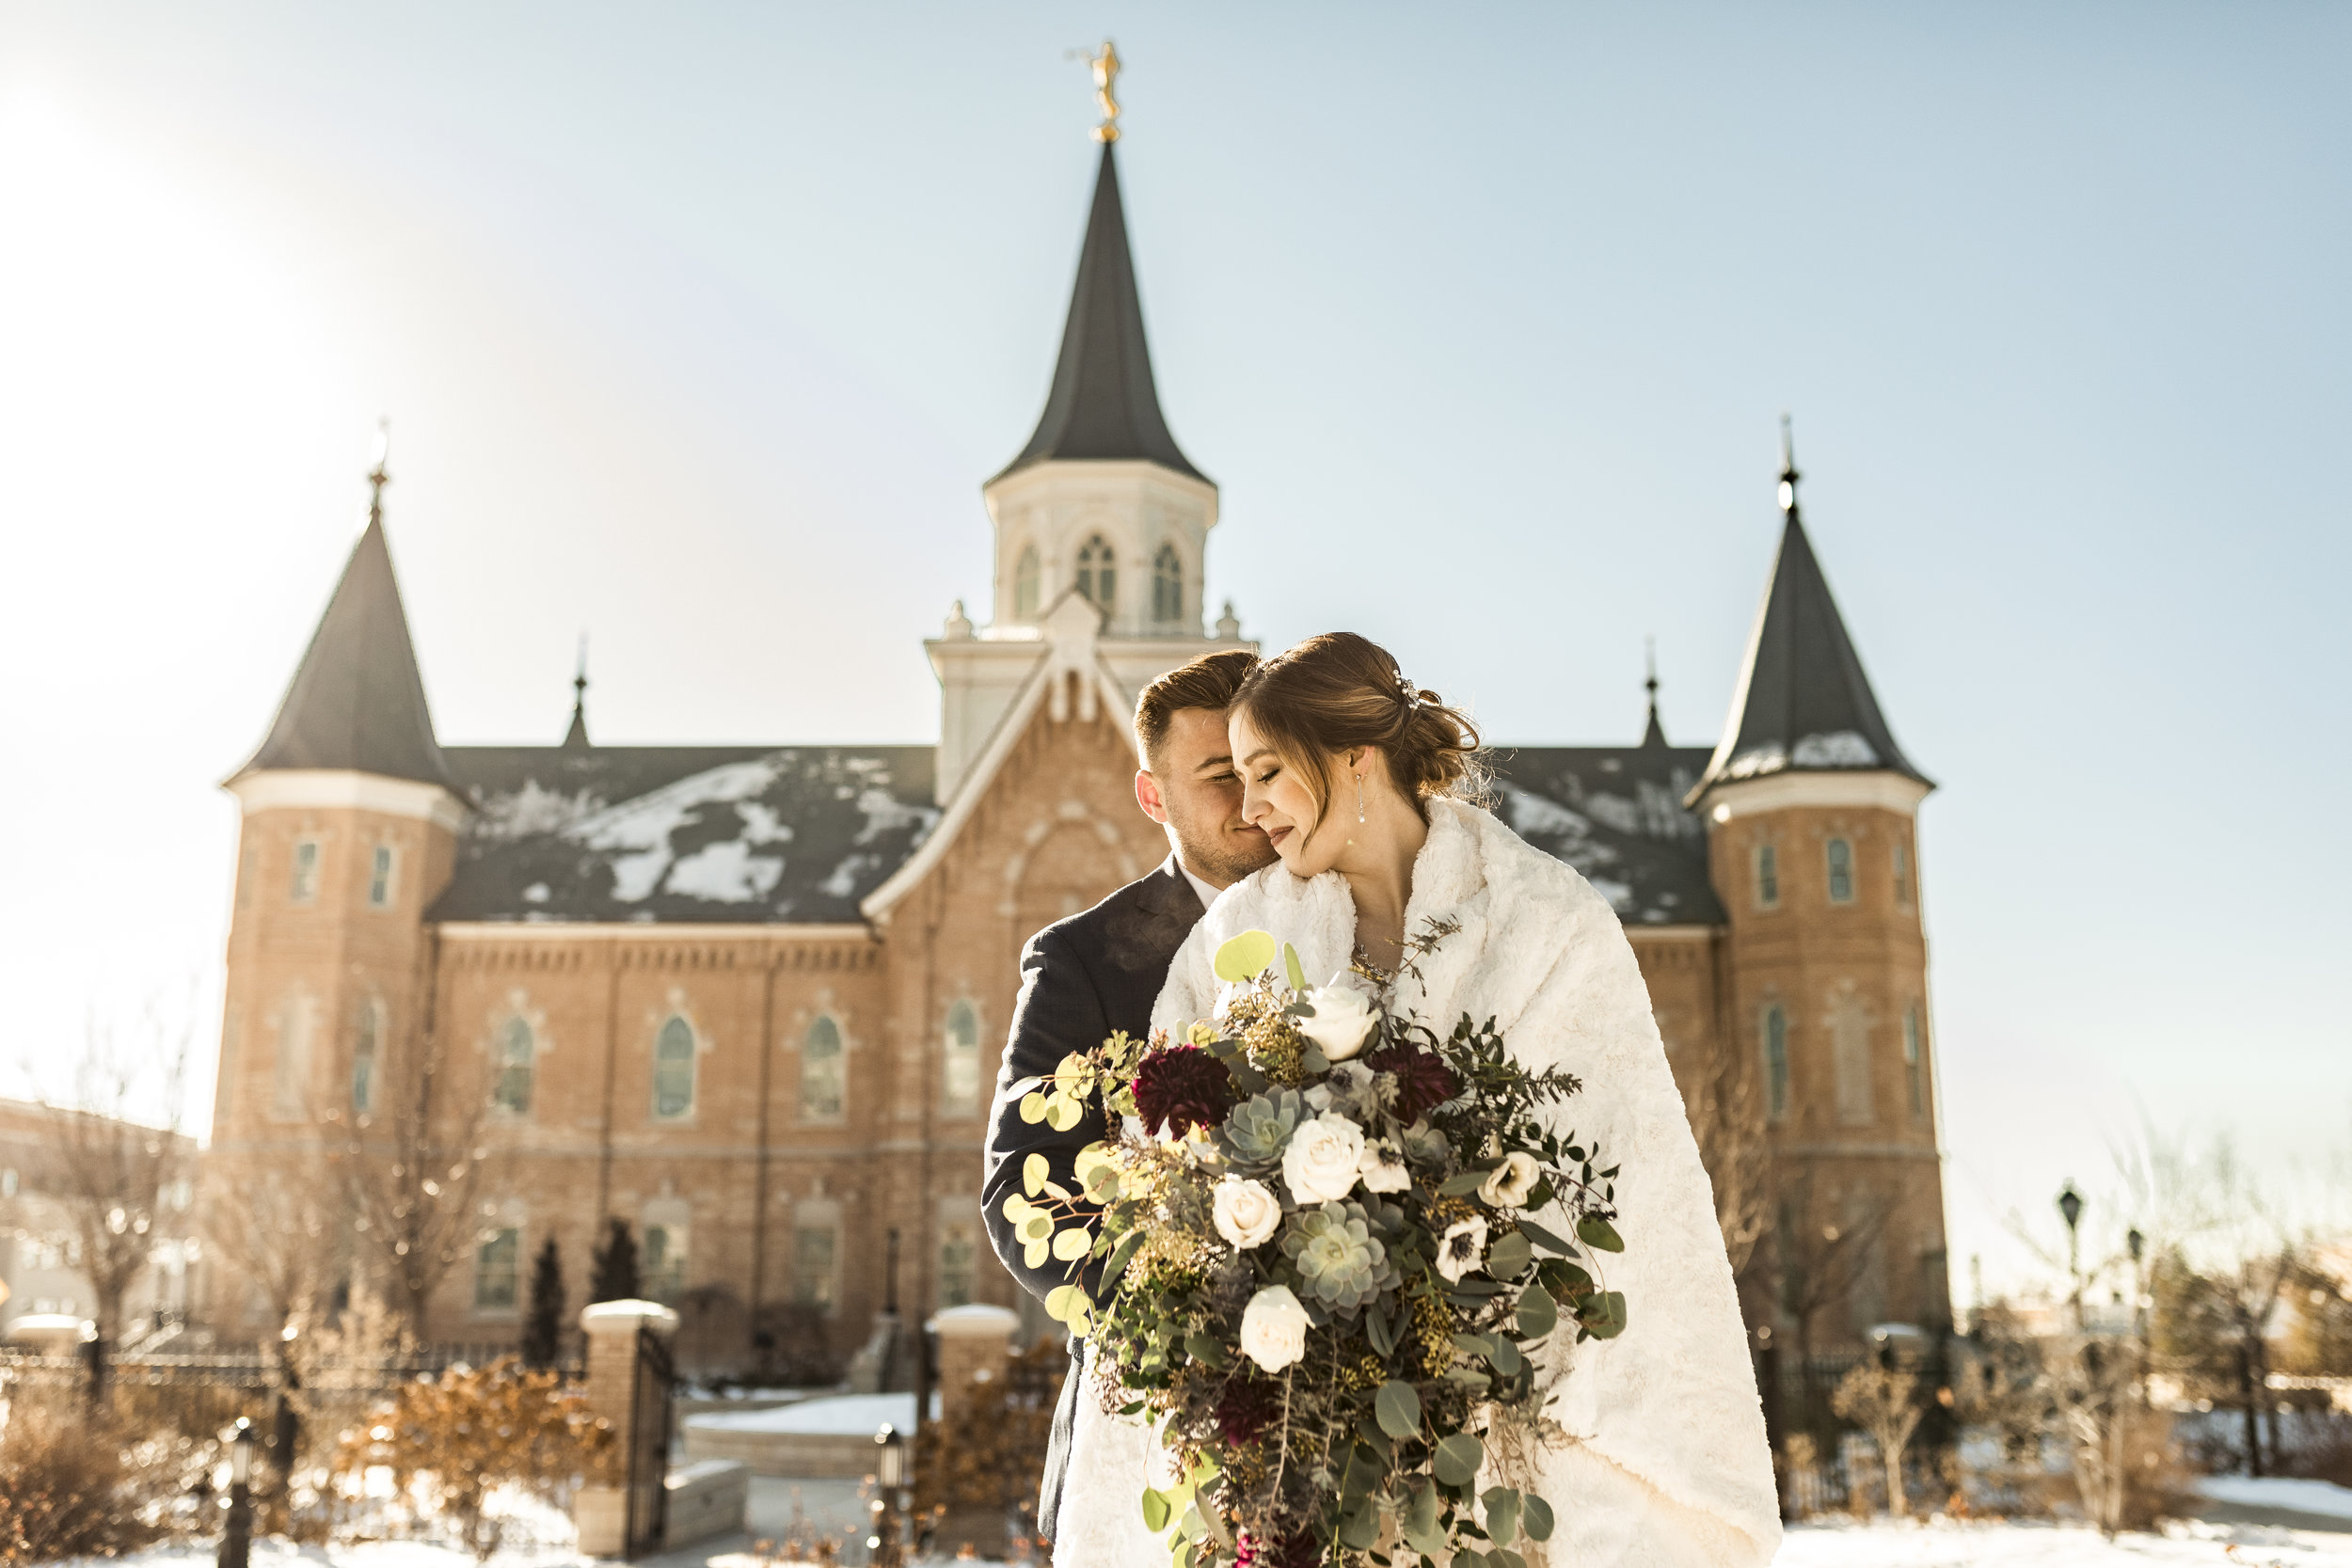 Skyler + Austin | Provo City Center Temple Wedding | Bri Bergman Photography 128.JPG